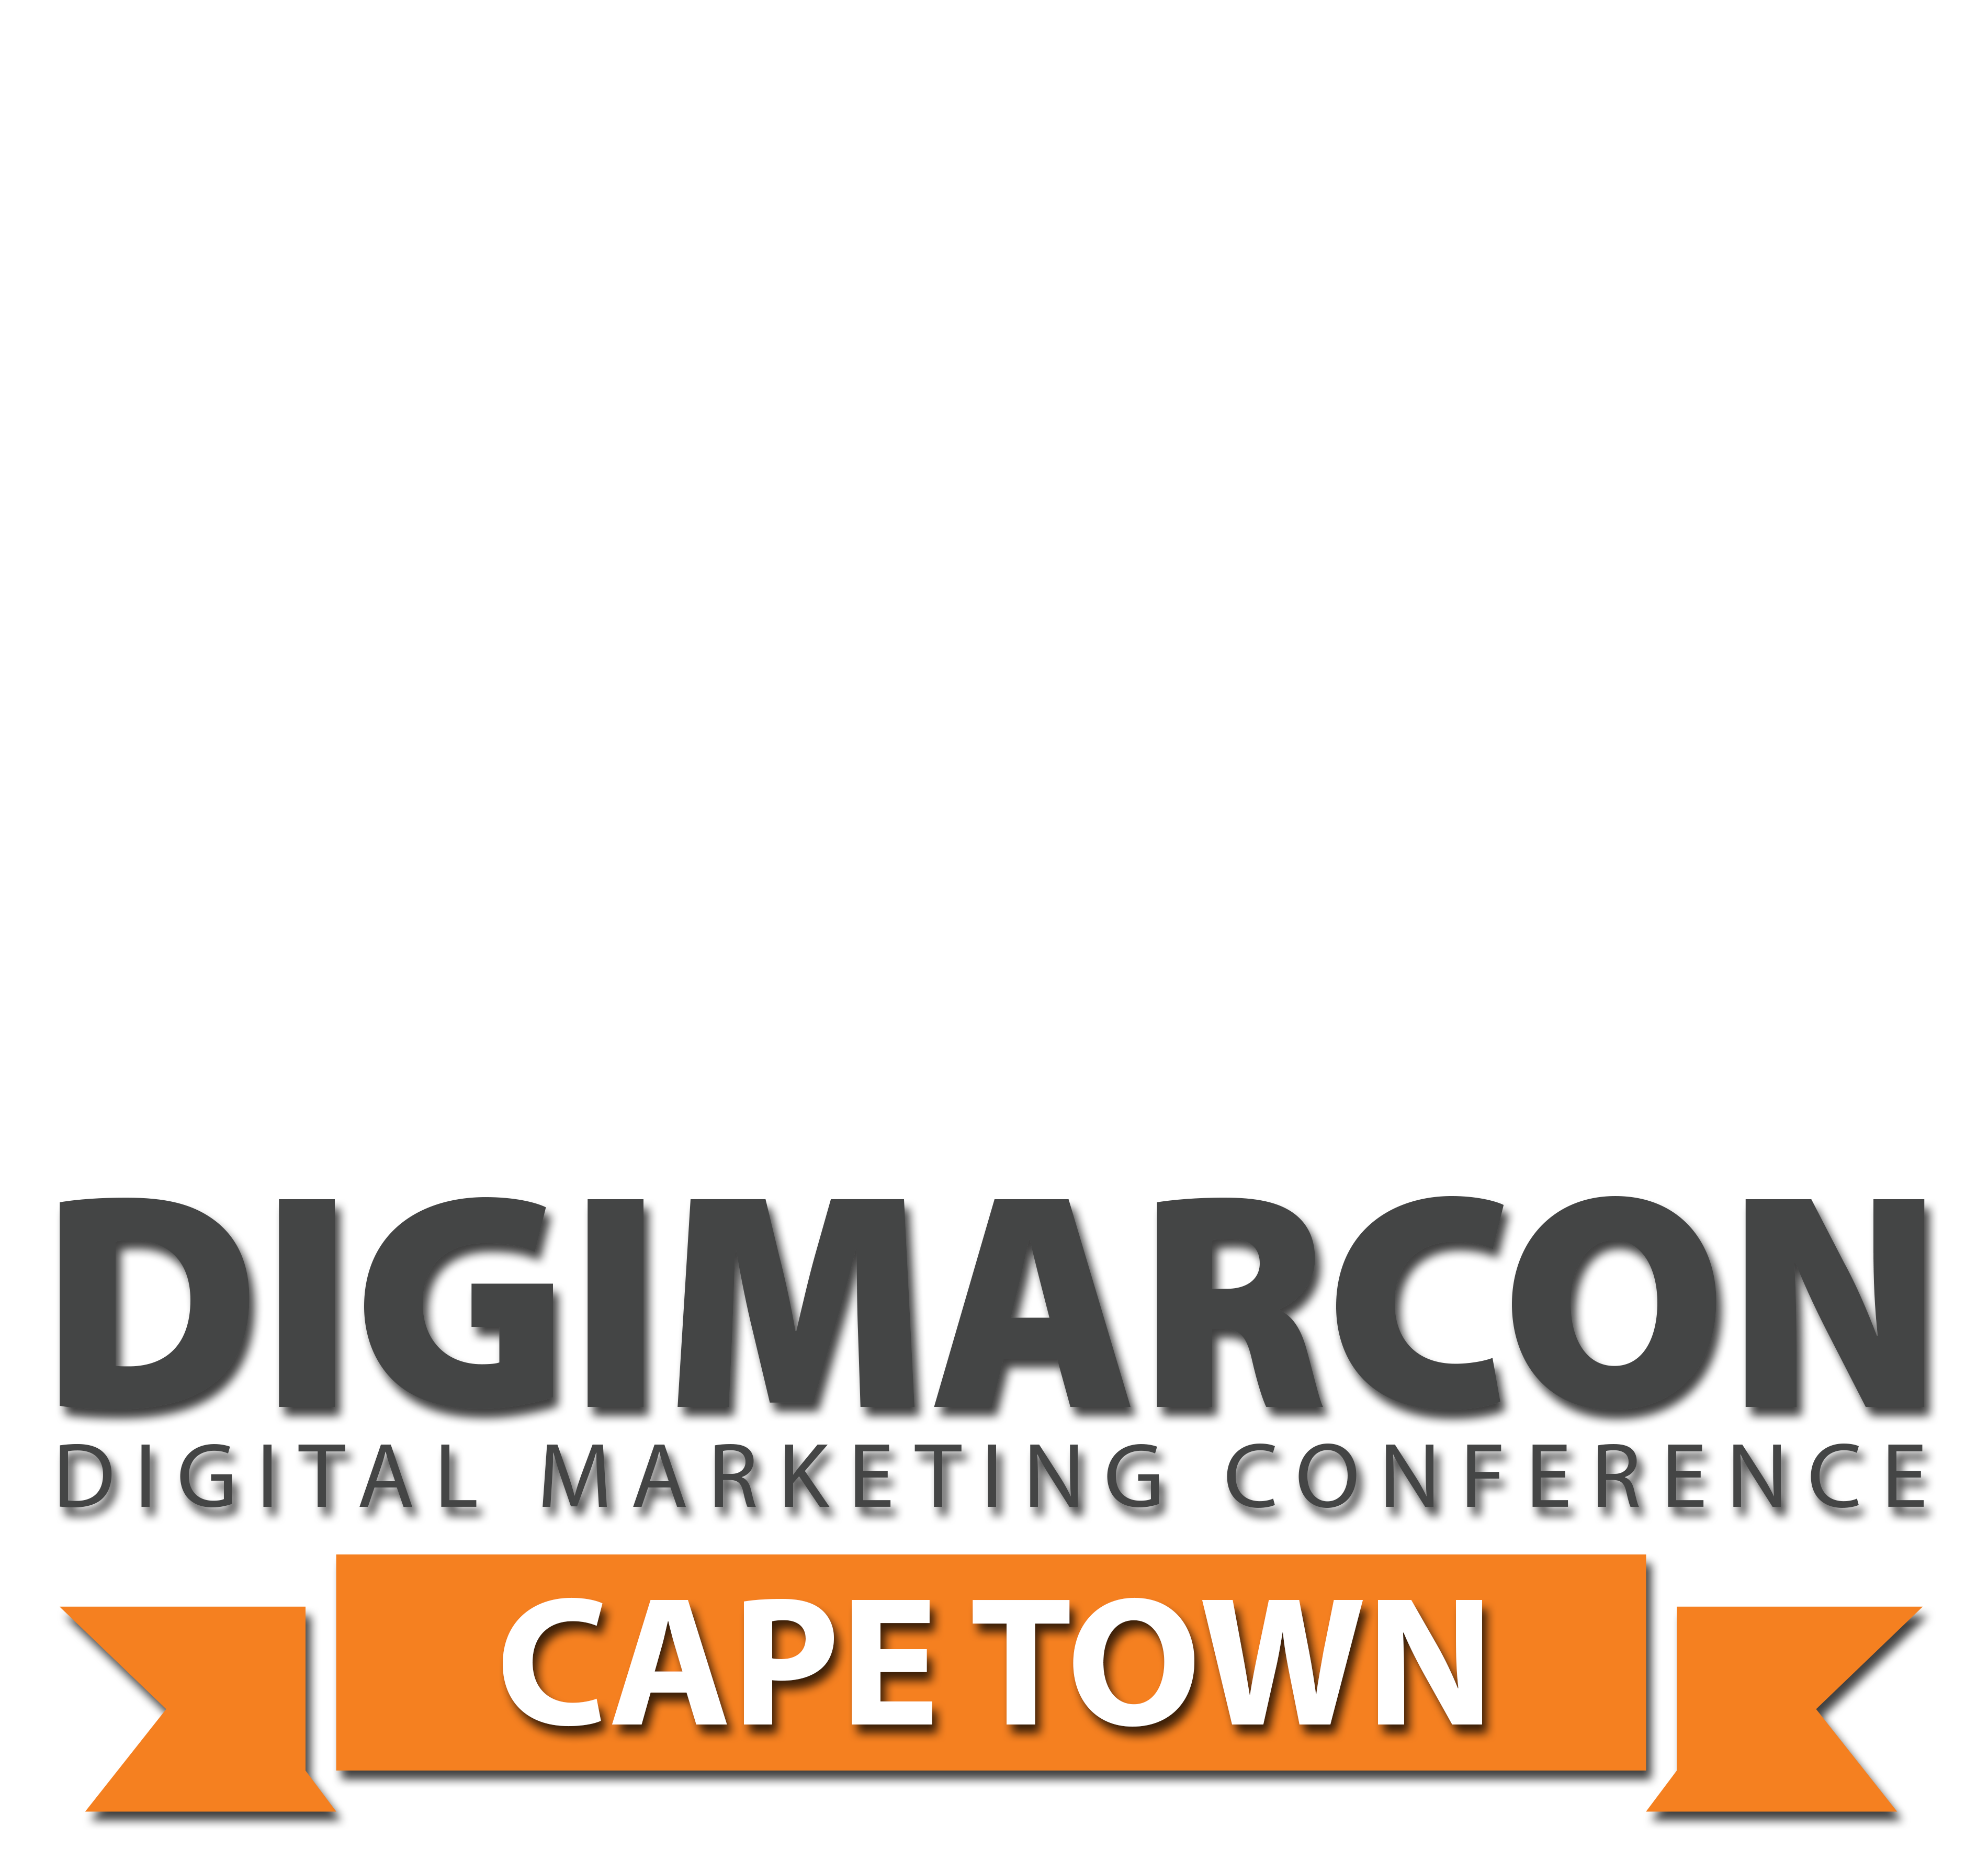 DIGIMARCON SOUTH AFRICA